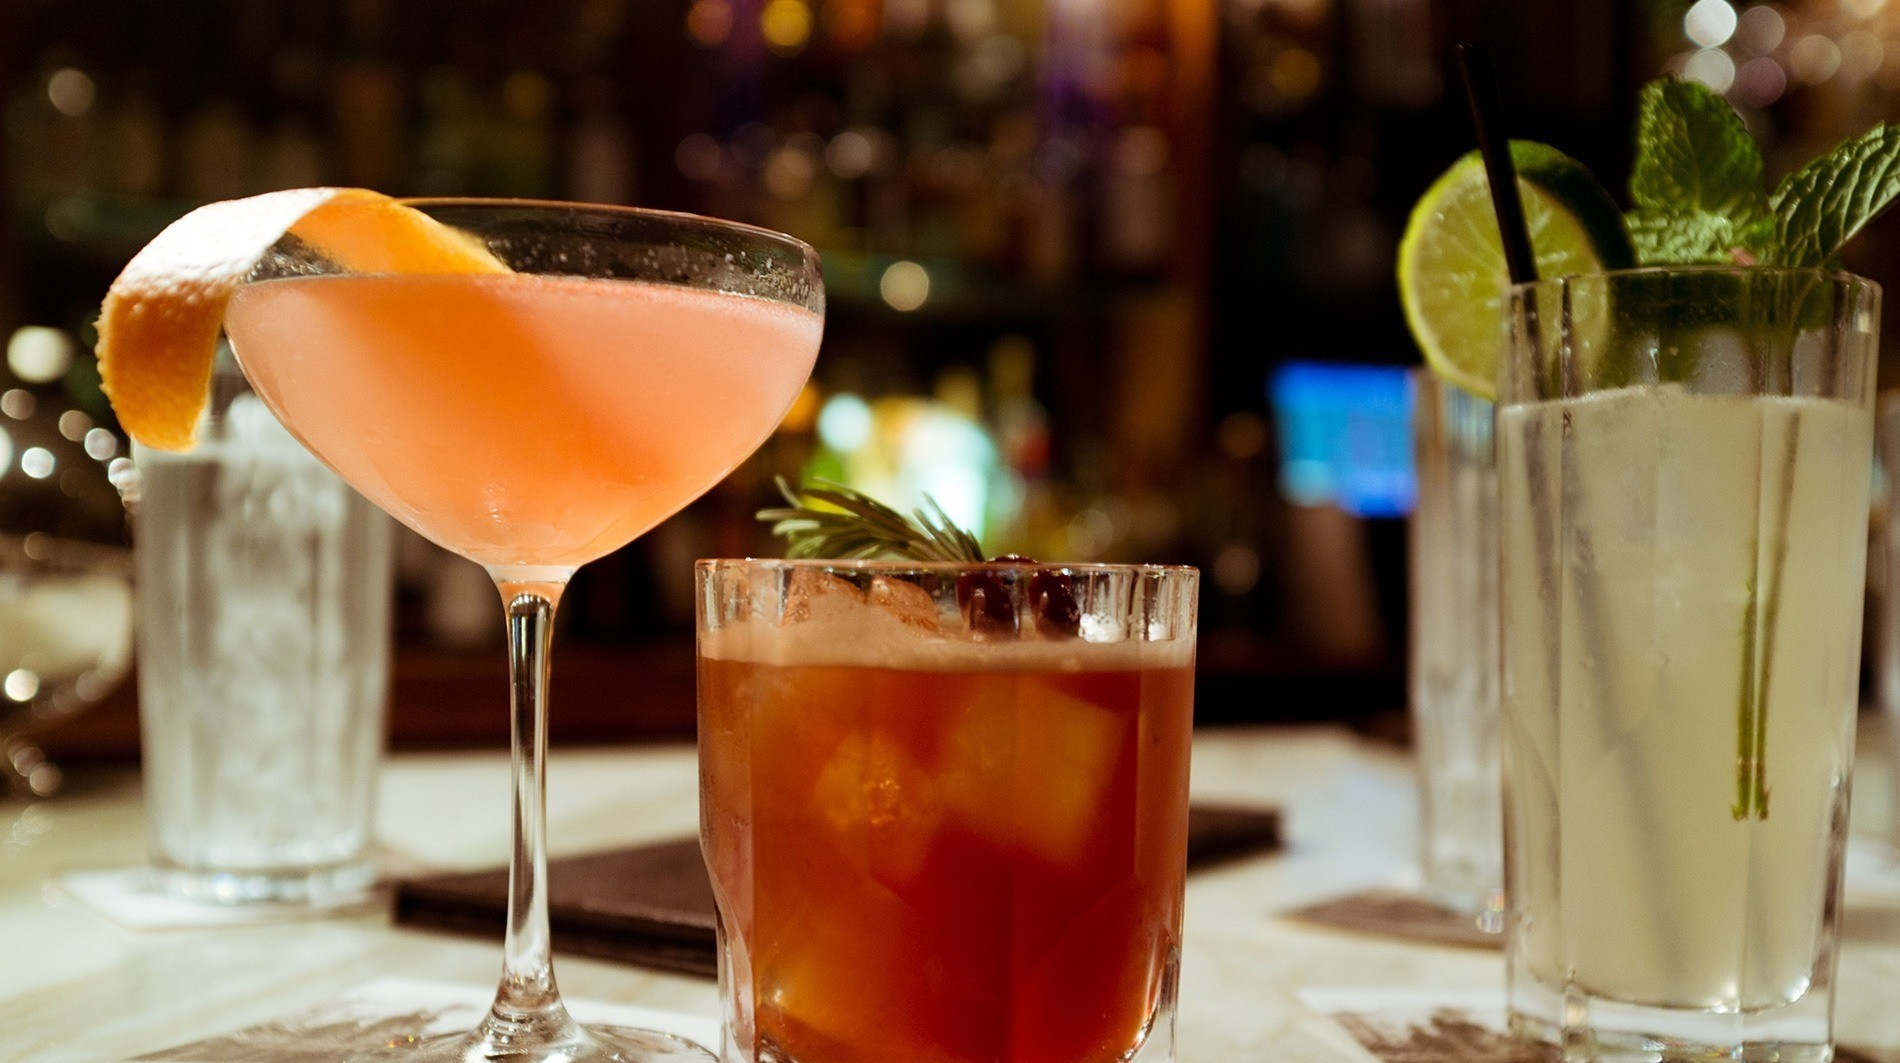 Your Brain Makes You Want to Order Drink After Drink